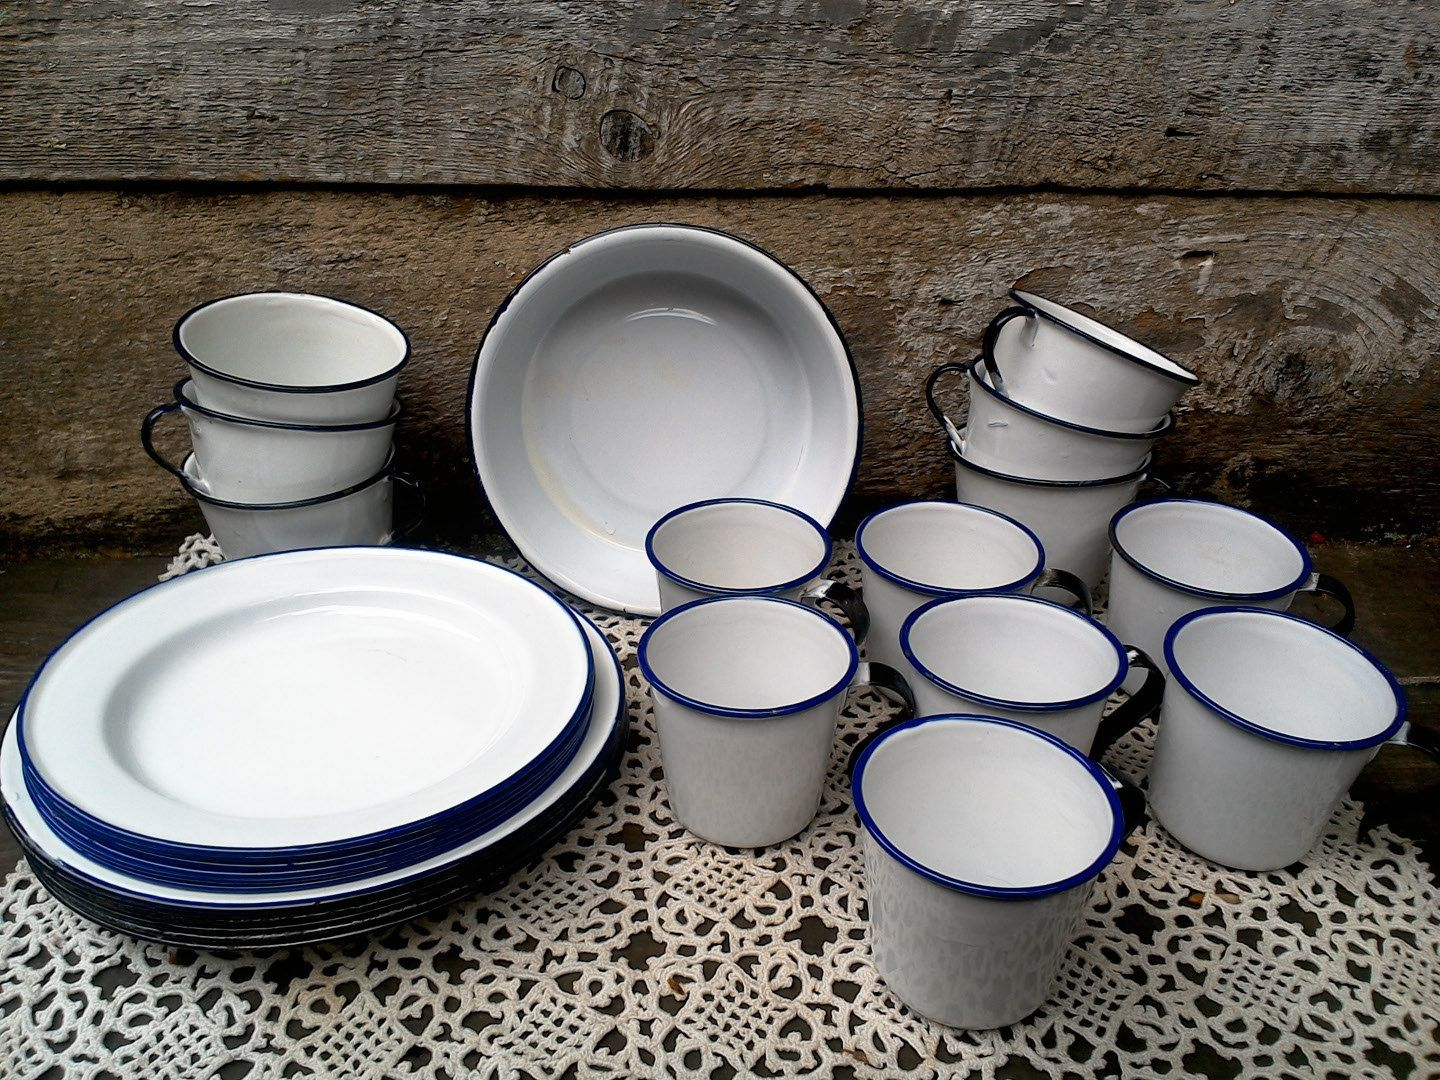 SET OF 26 Pieces Enamel SWEDEN Picnic Plates Bowl Cups Camping